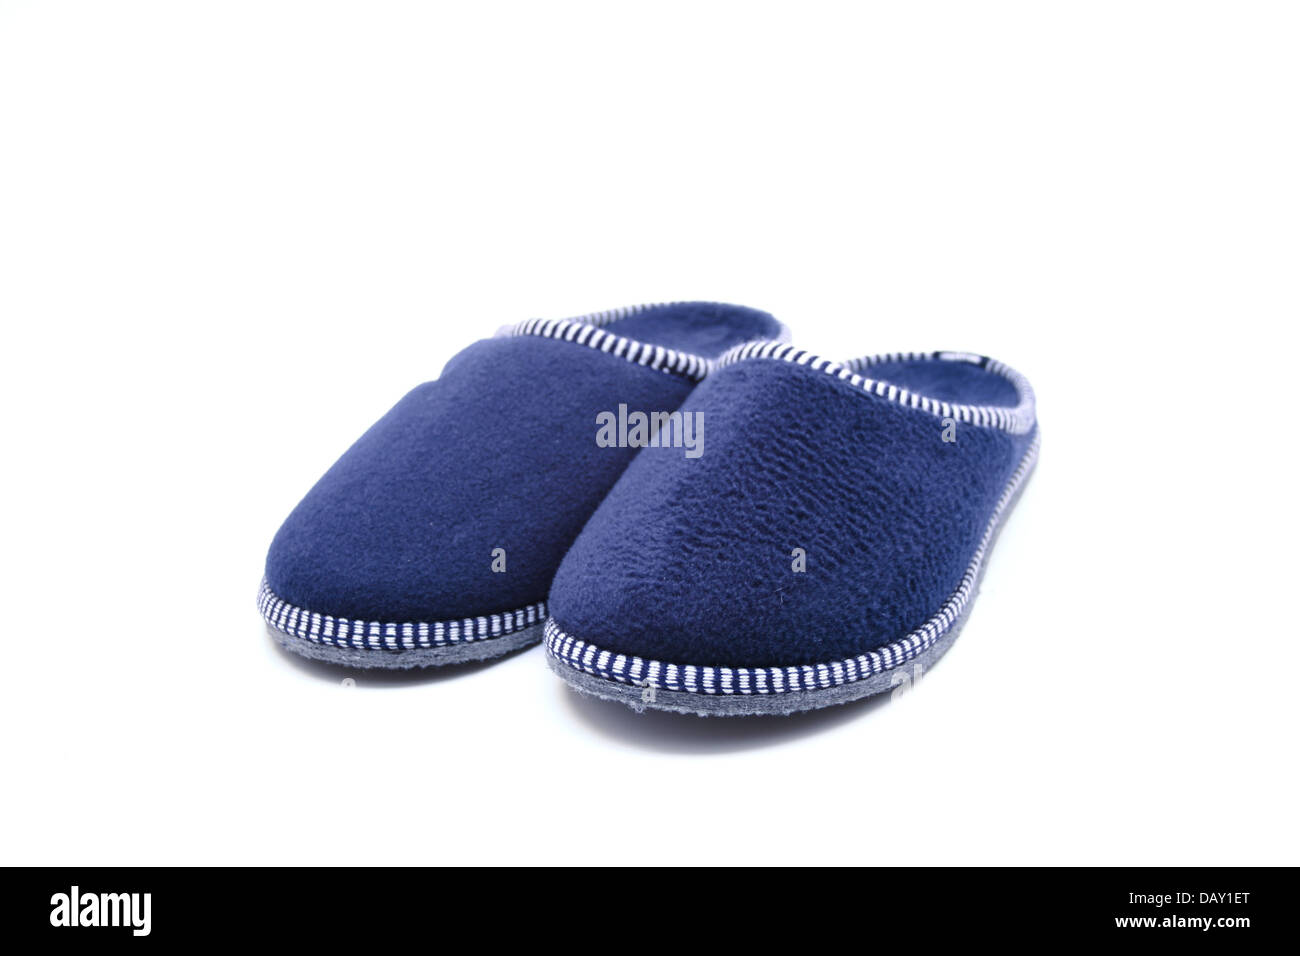 Blue house Shoes - Stock Image